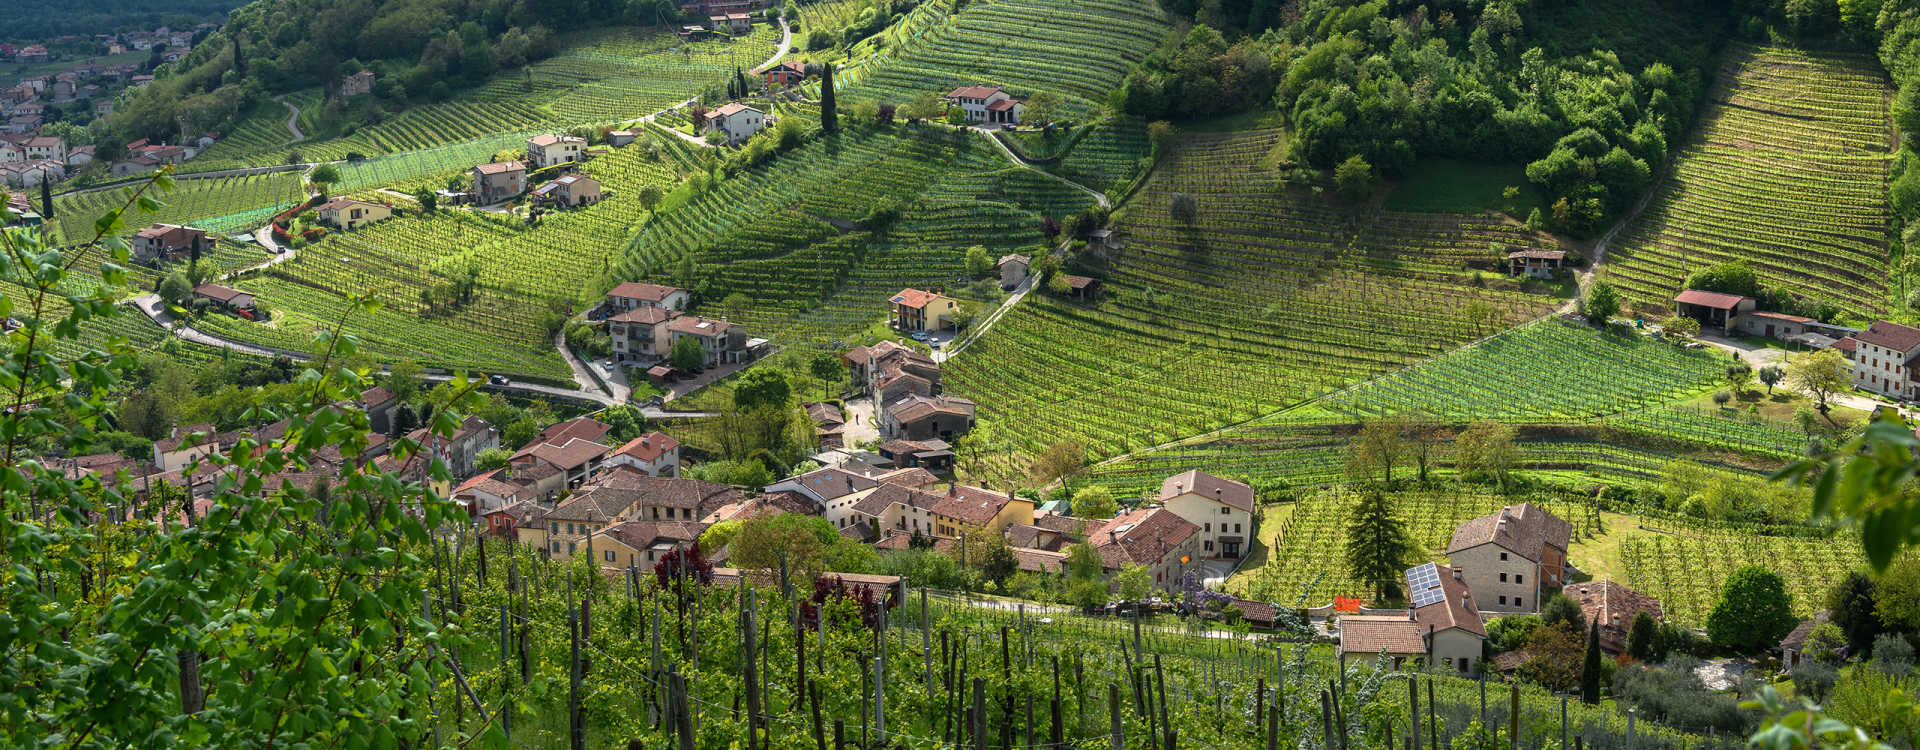 Image for Prosecco Italy content section